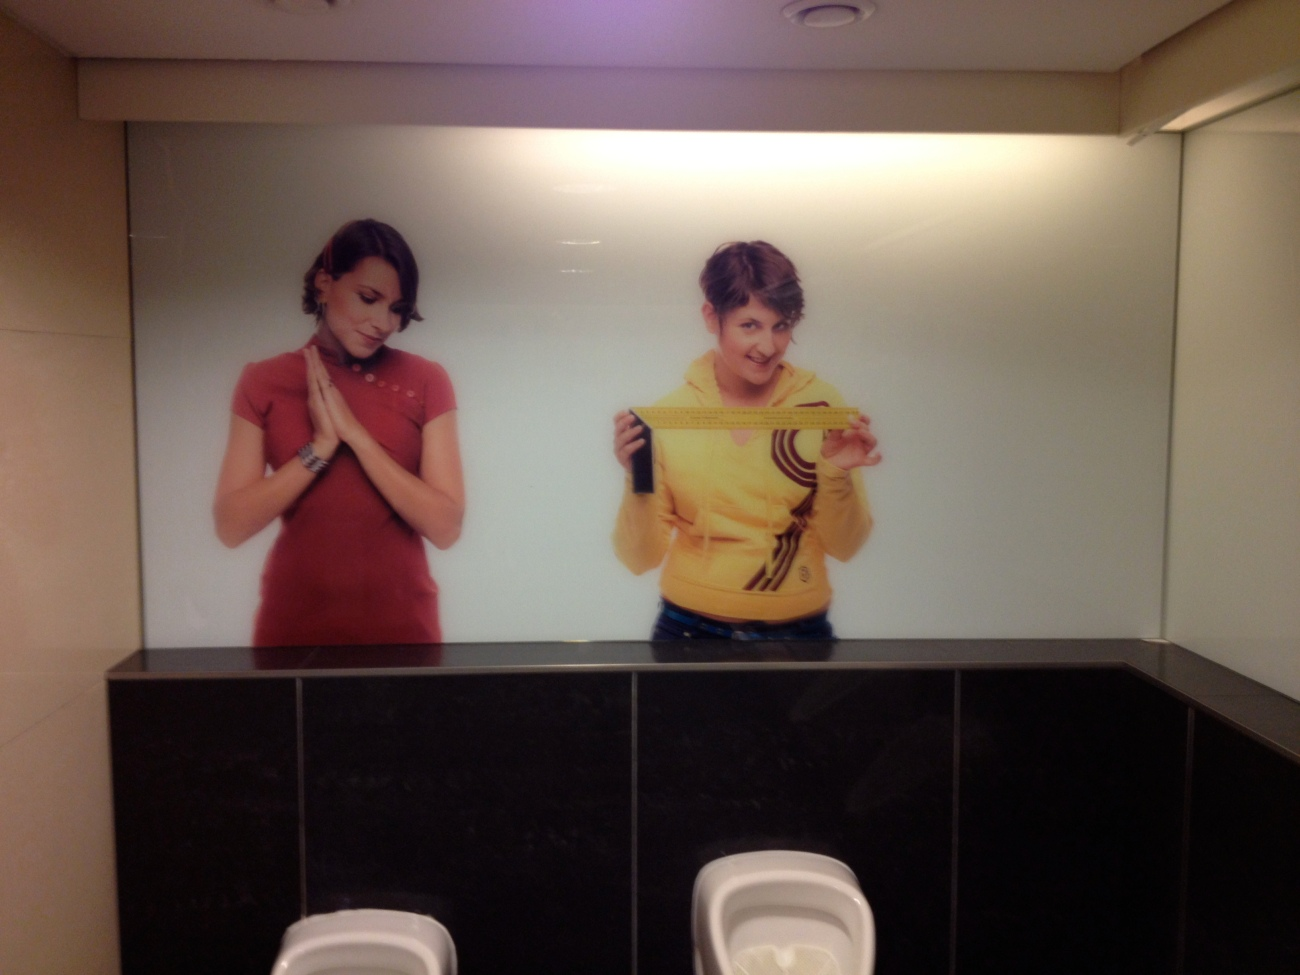 Typical of the Czech attitude toward life: the men's urinals in an expensive mall.